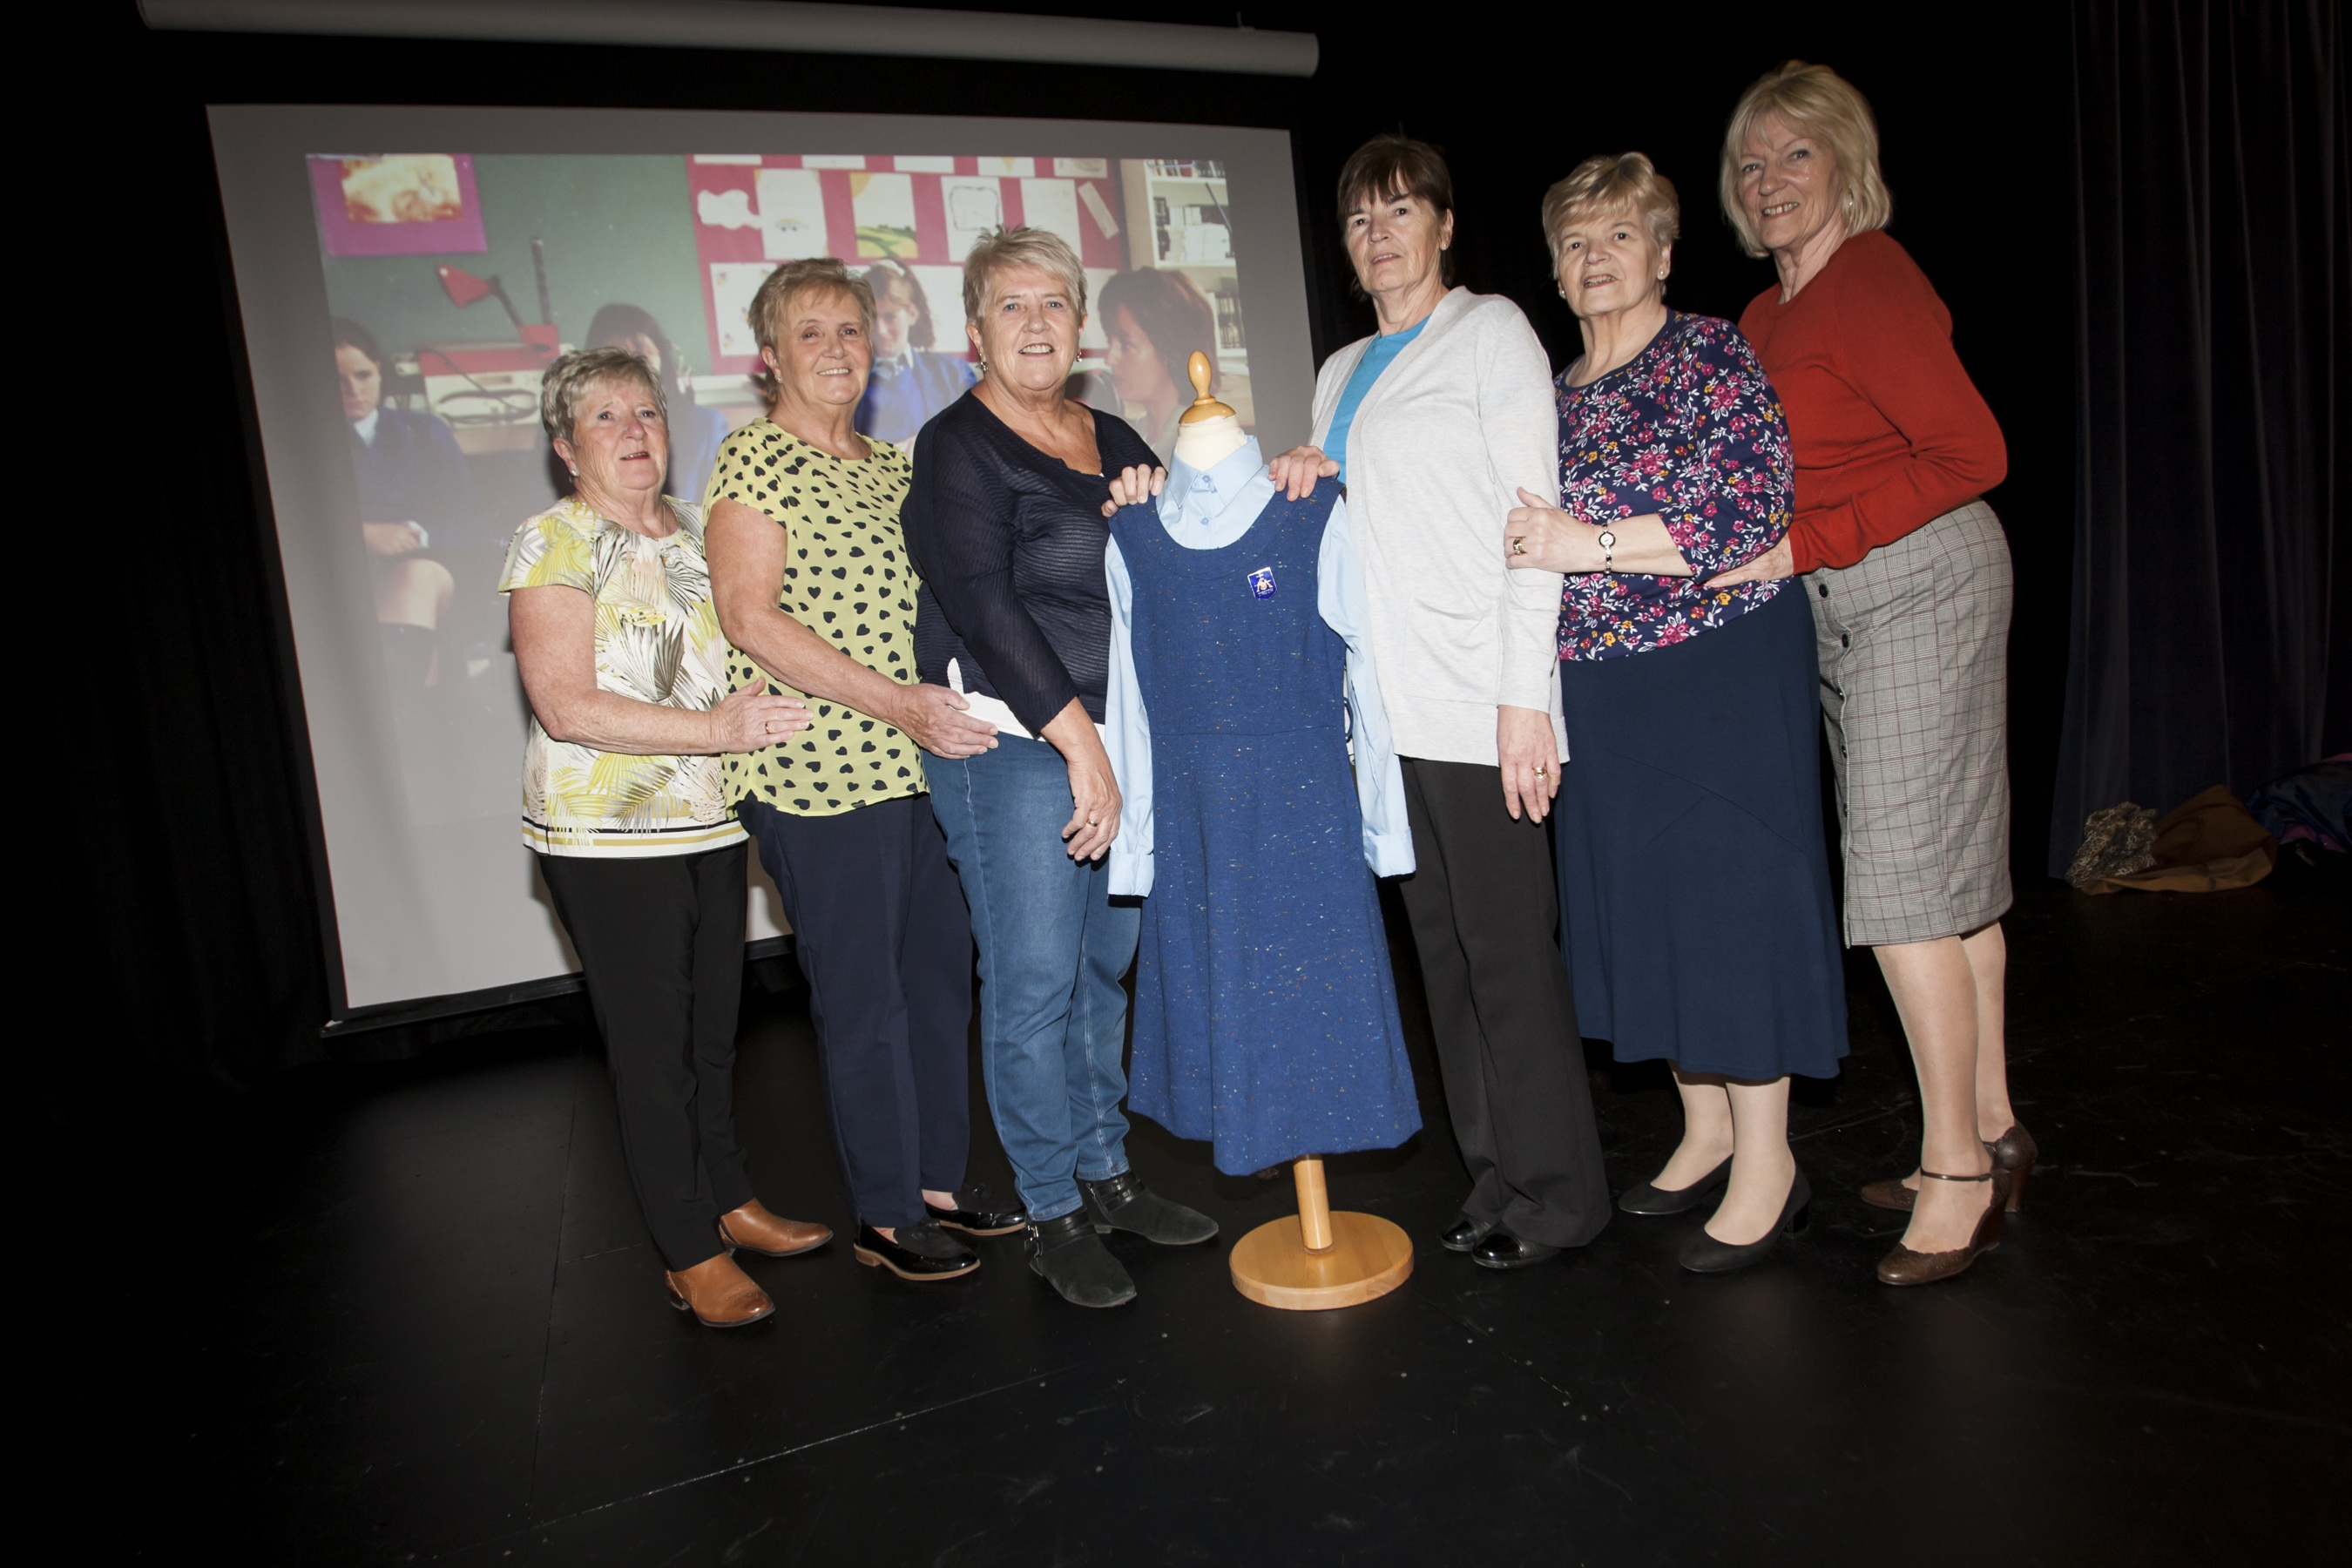 The Ferry sisters (left), Betty, Bridie and Maeve and the McGrory sisters (right), Marie, Madeline and Jean, all past pupils of St Mary's, pictured at Friday's exhibition.